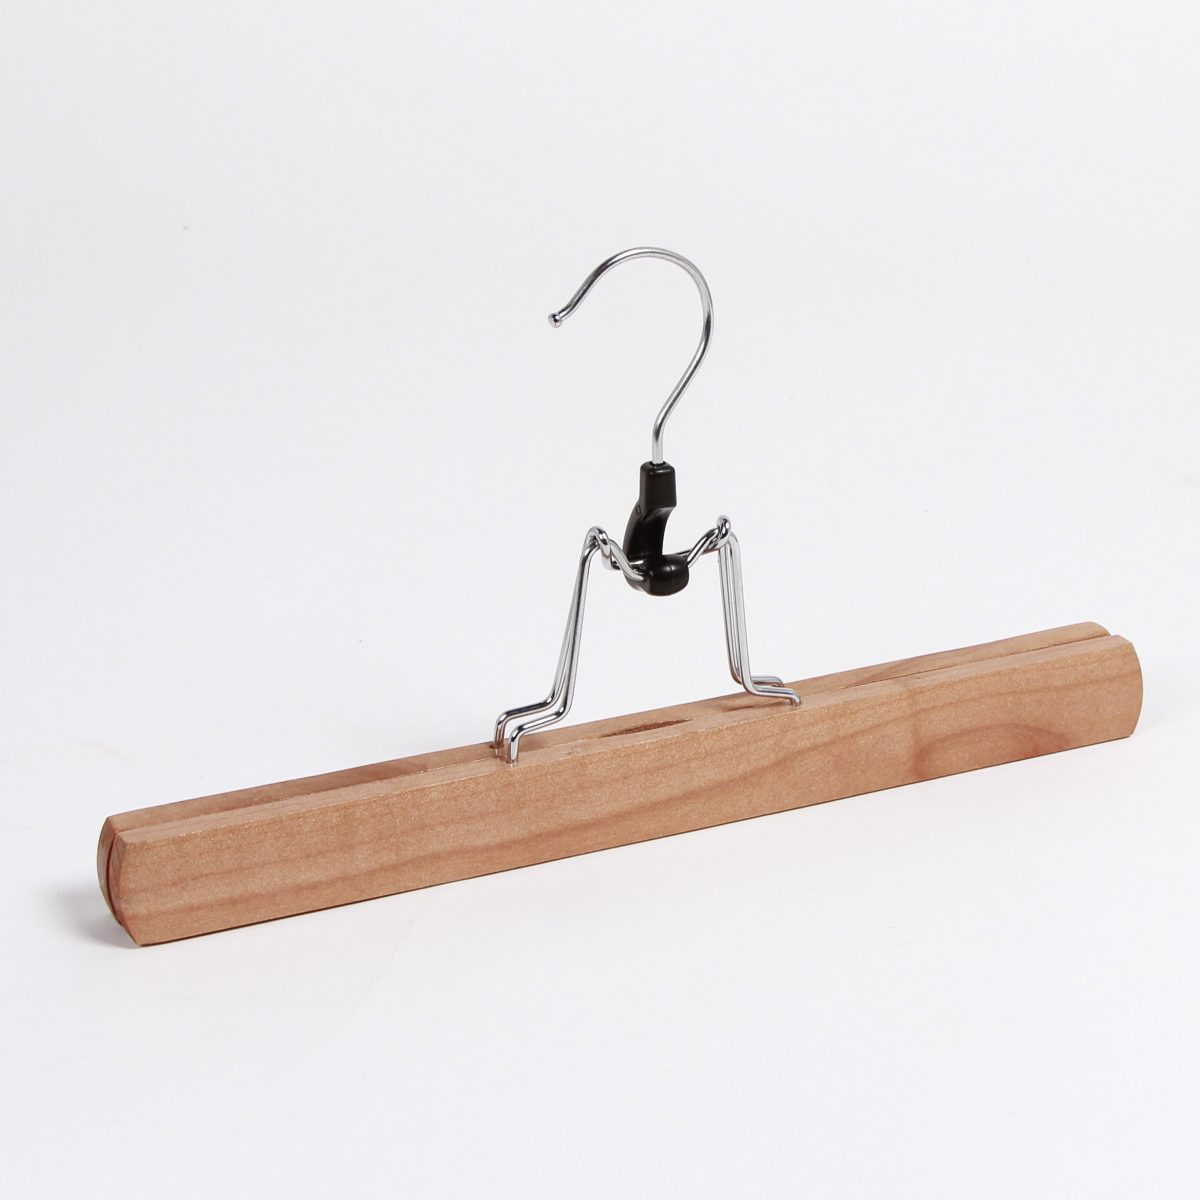 Wooden Clamp Hangers for Trousers & Skirts (300 mm)